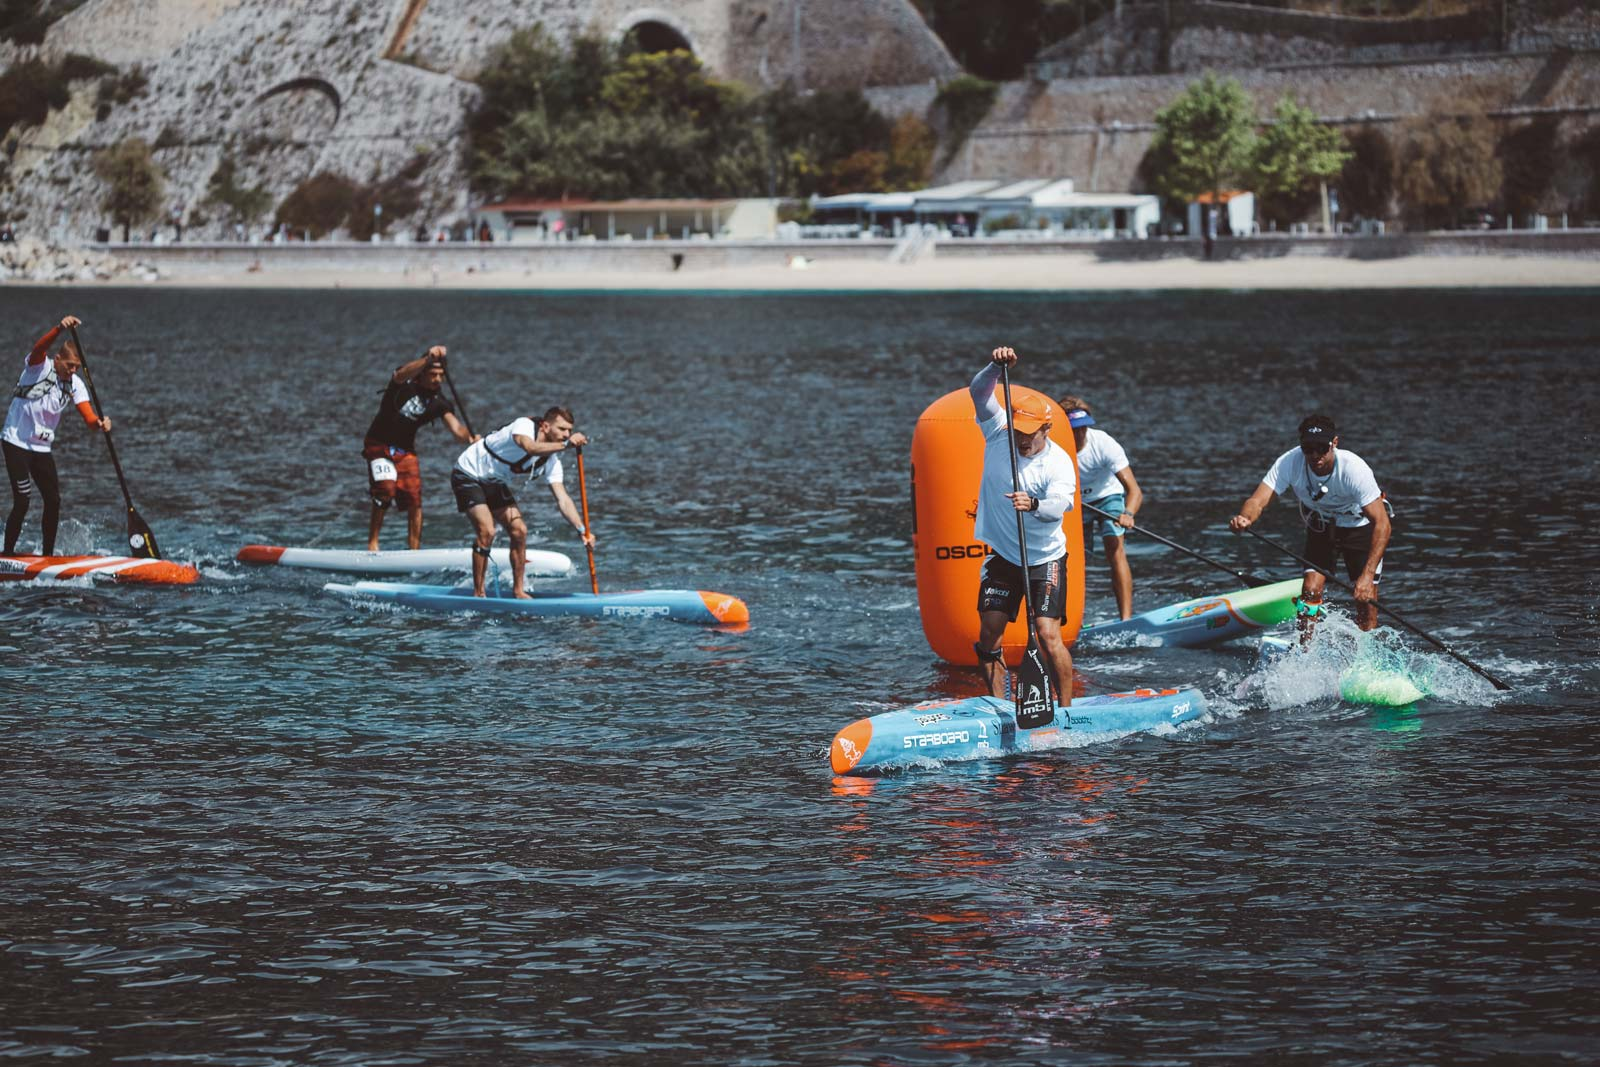 Starboard-SUP-Stand-Up-Paddleboarding-Michael-Booth-Fiona-Wylde-Win-2019-Azur-Paddle-Days-Race-Event-France-pack-buoy-turn-1